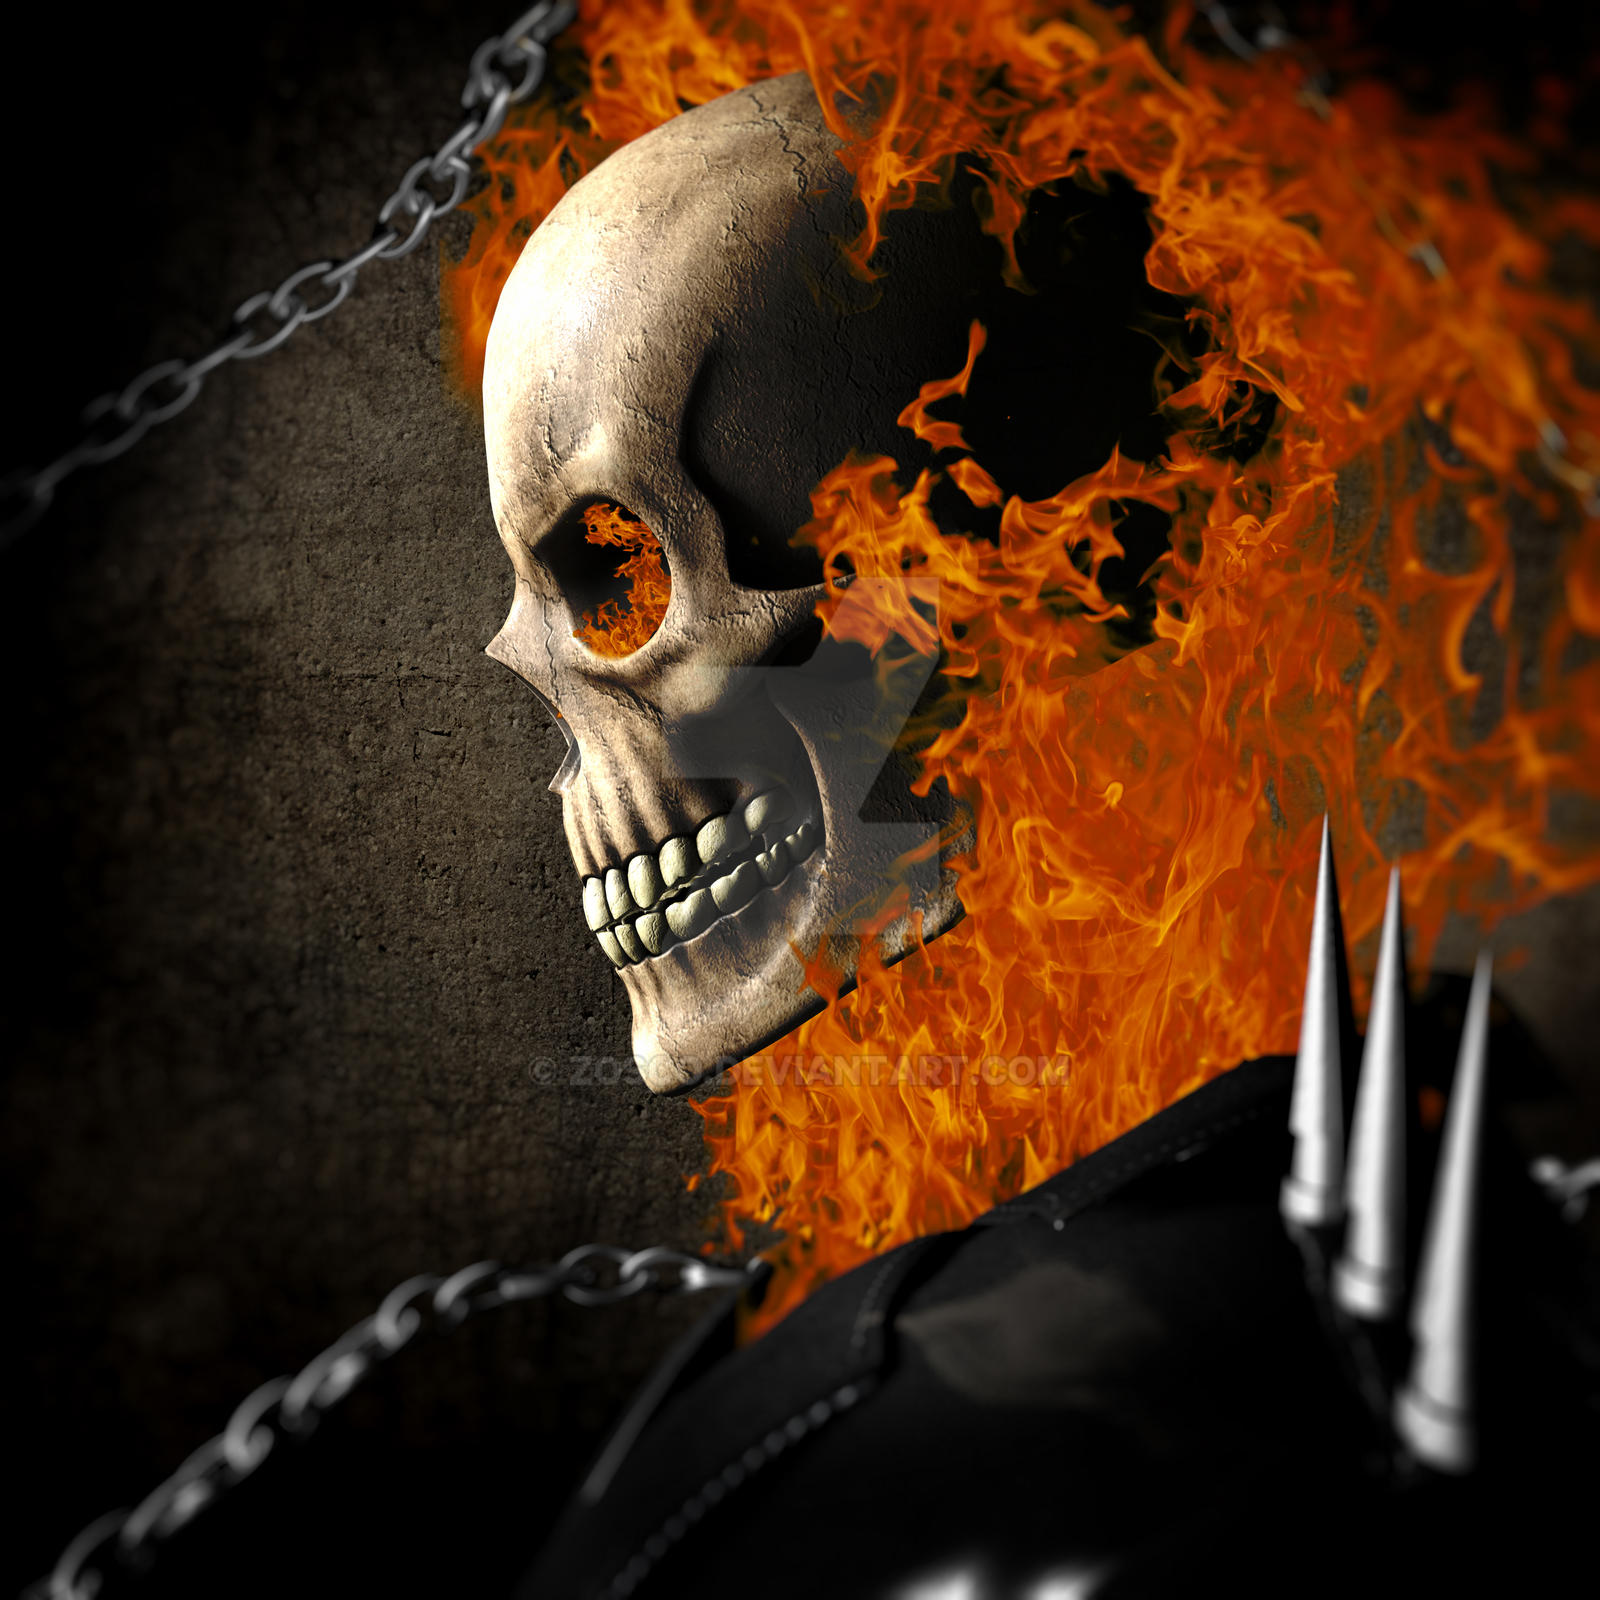 Ghost Rider HeadShot - New Series - by zosco on DeviantArt